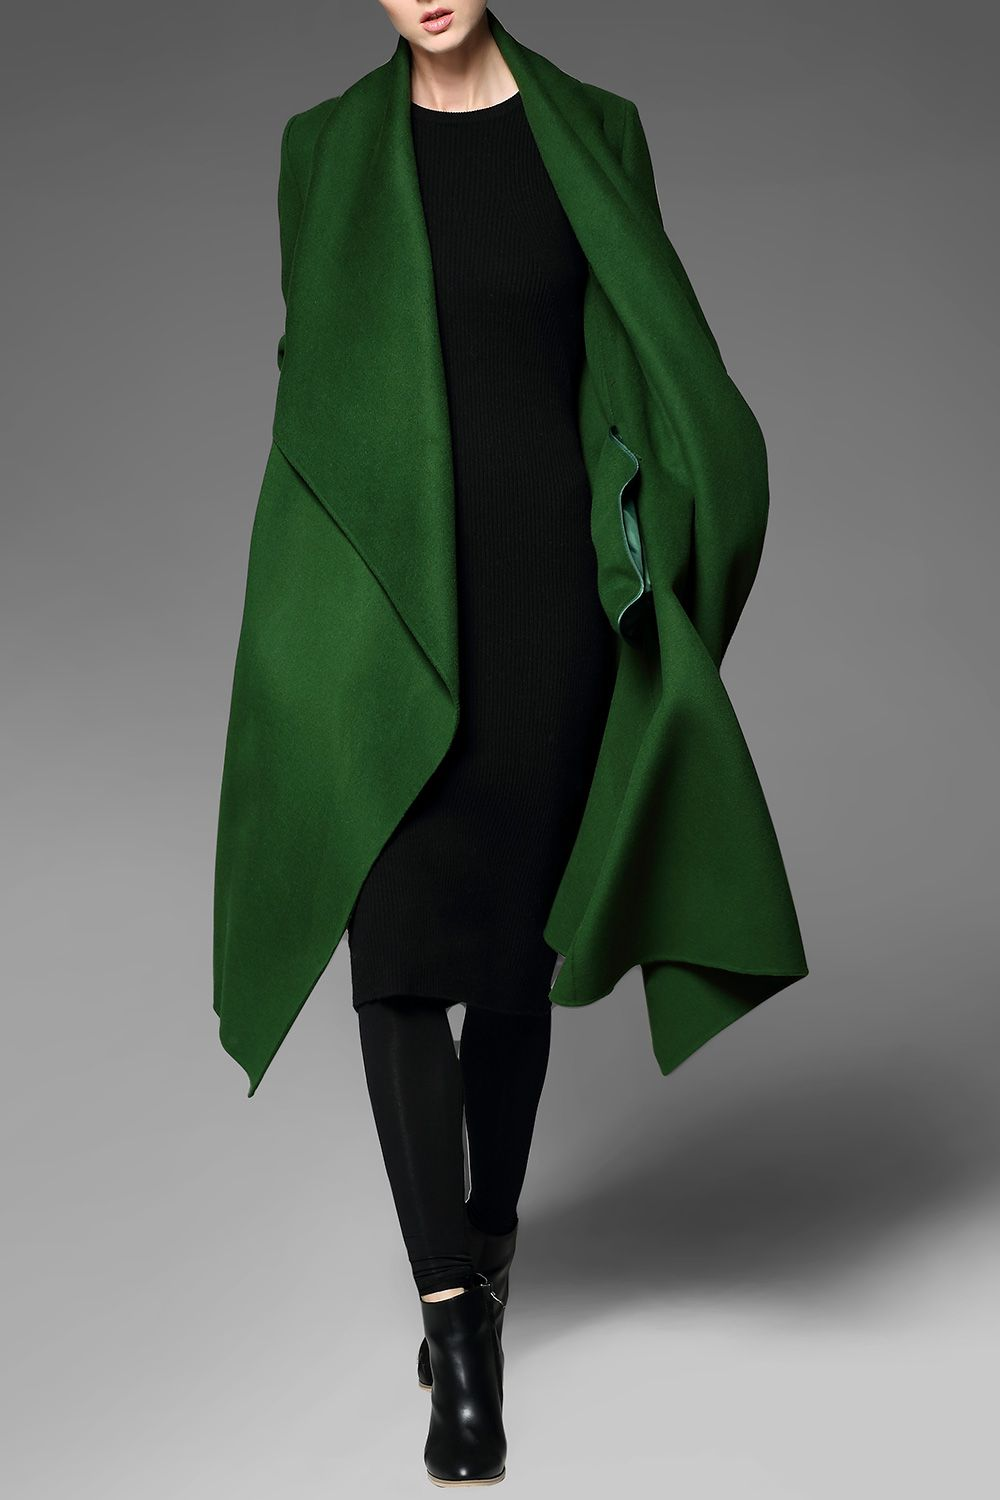 9ca68cb9d182 Green statement coat. Find more like it on Trendy Quest! Free ...